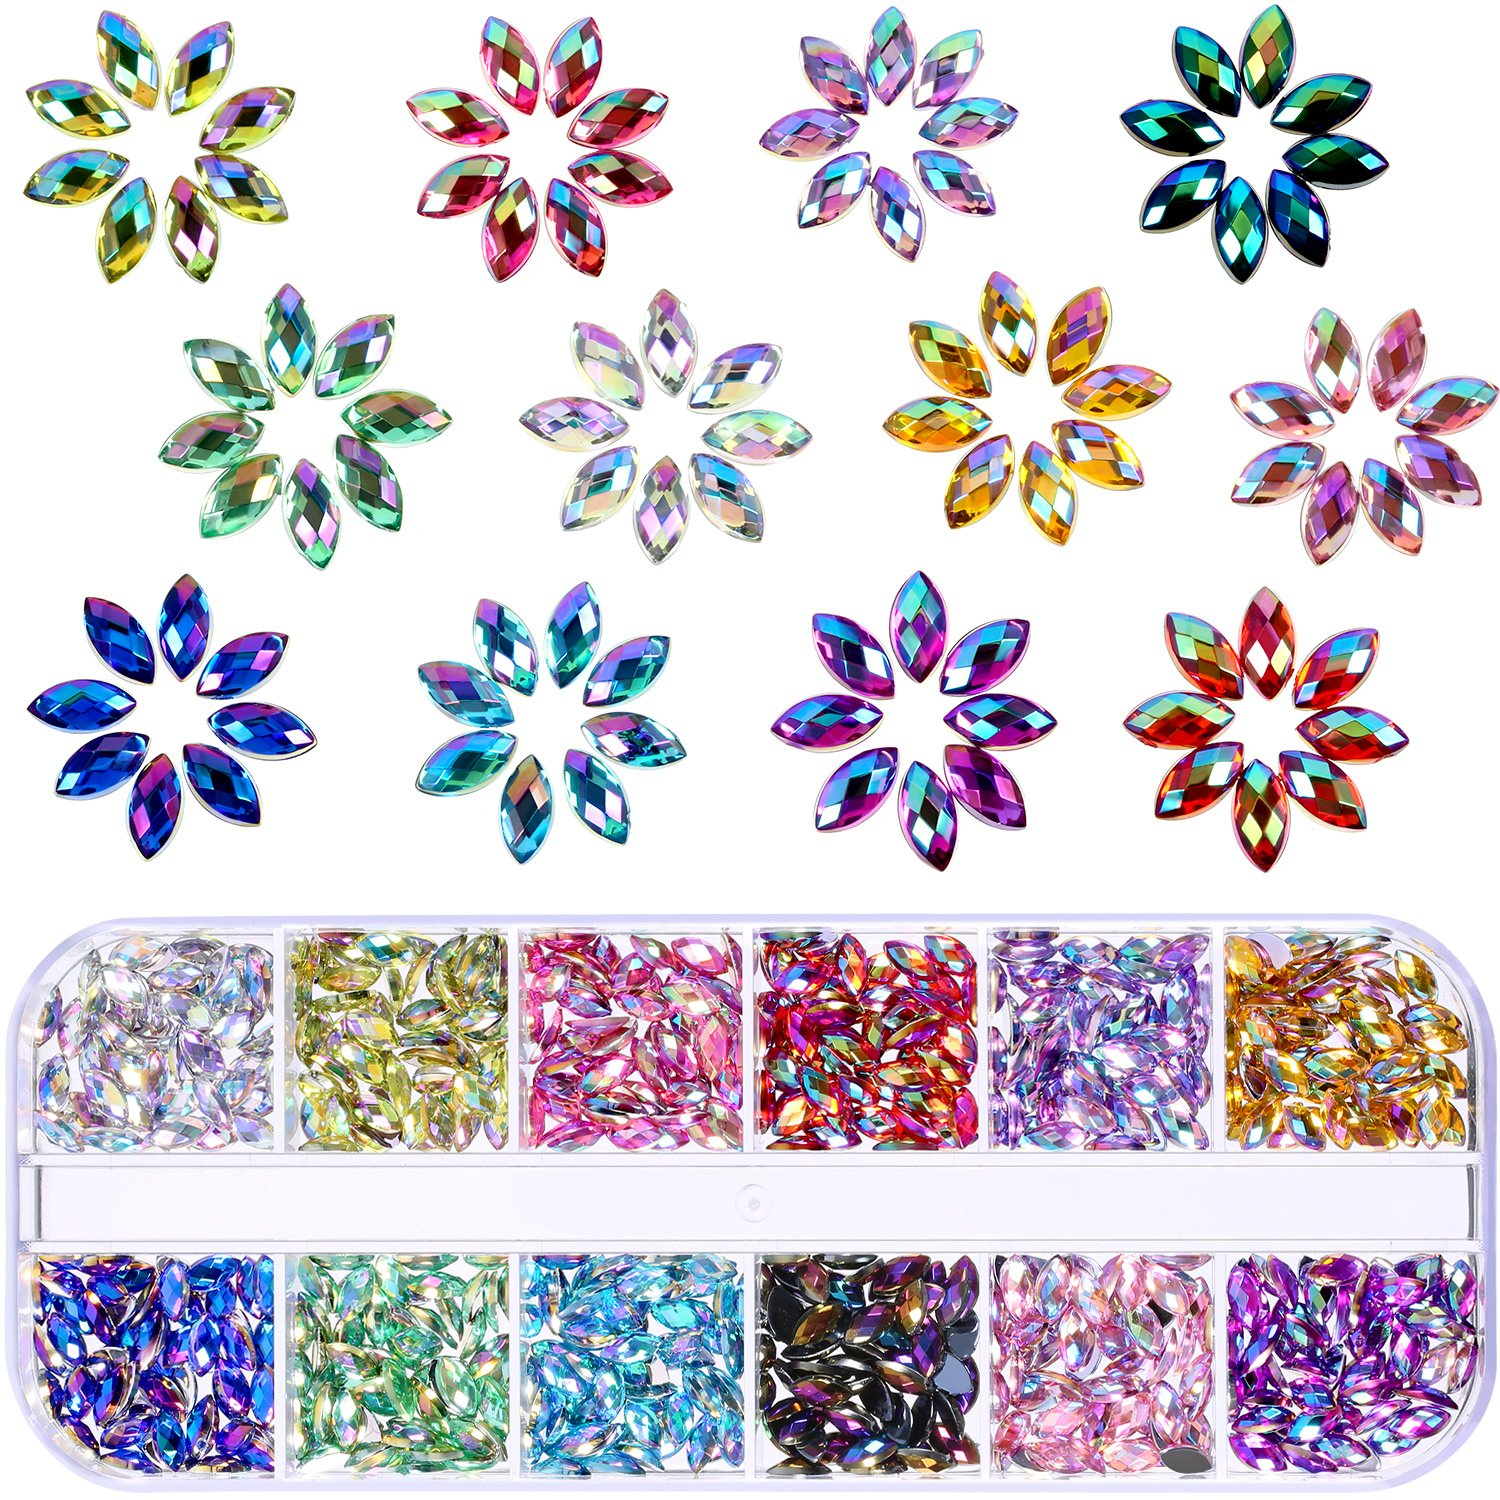 1200 Pieces 12 Colors Shiny Nail Art Rhinestones Horse Eye Rhinestones Flat Back Nail Gems Decorations Supplies with Box TecUnite